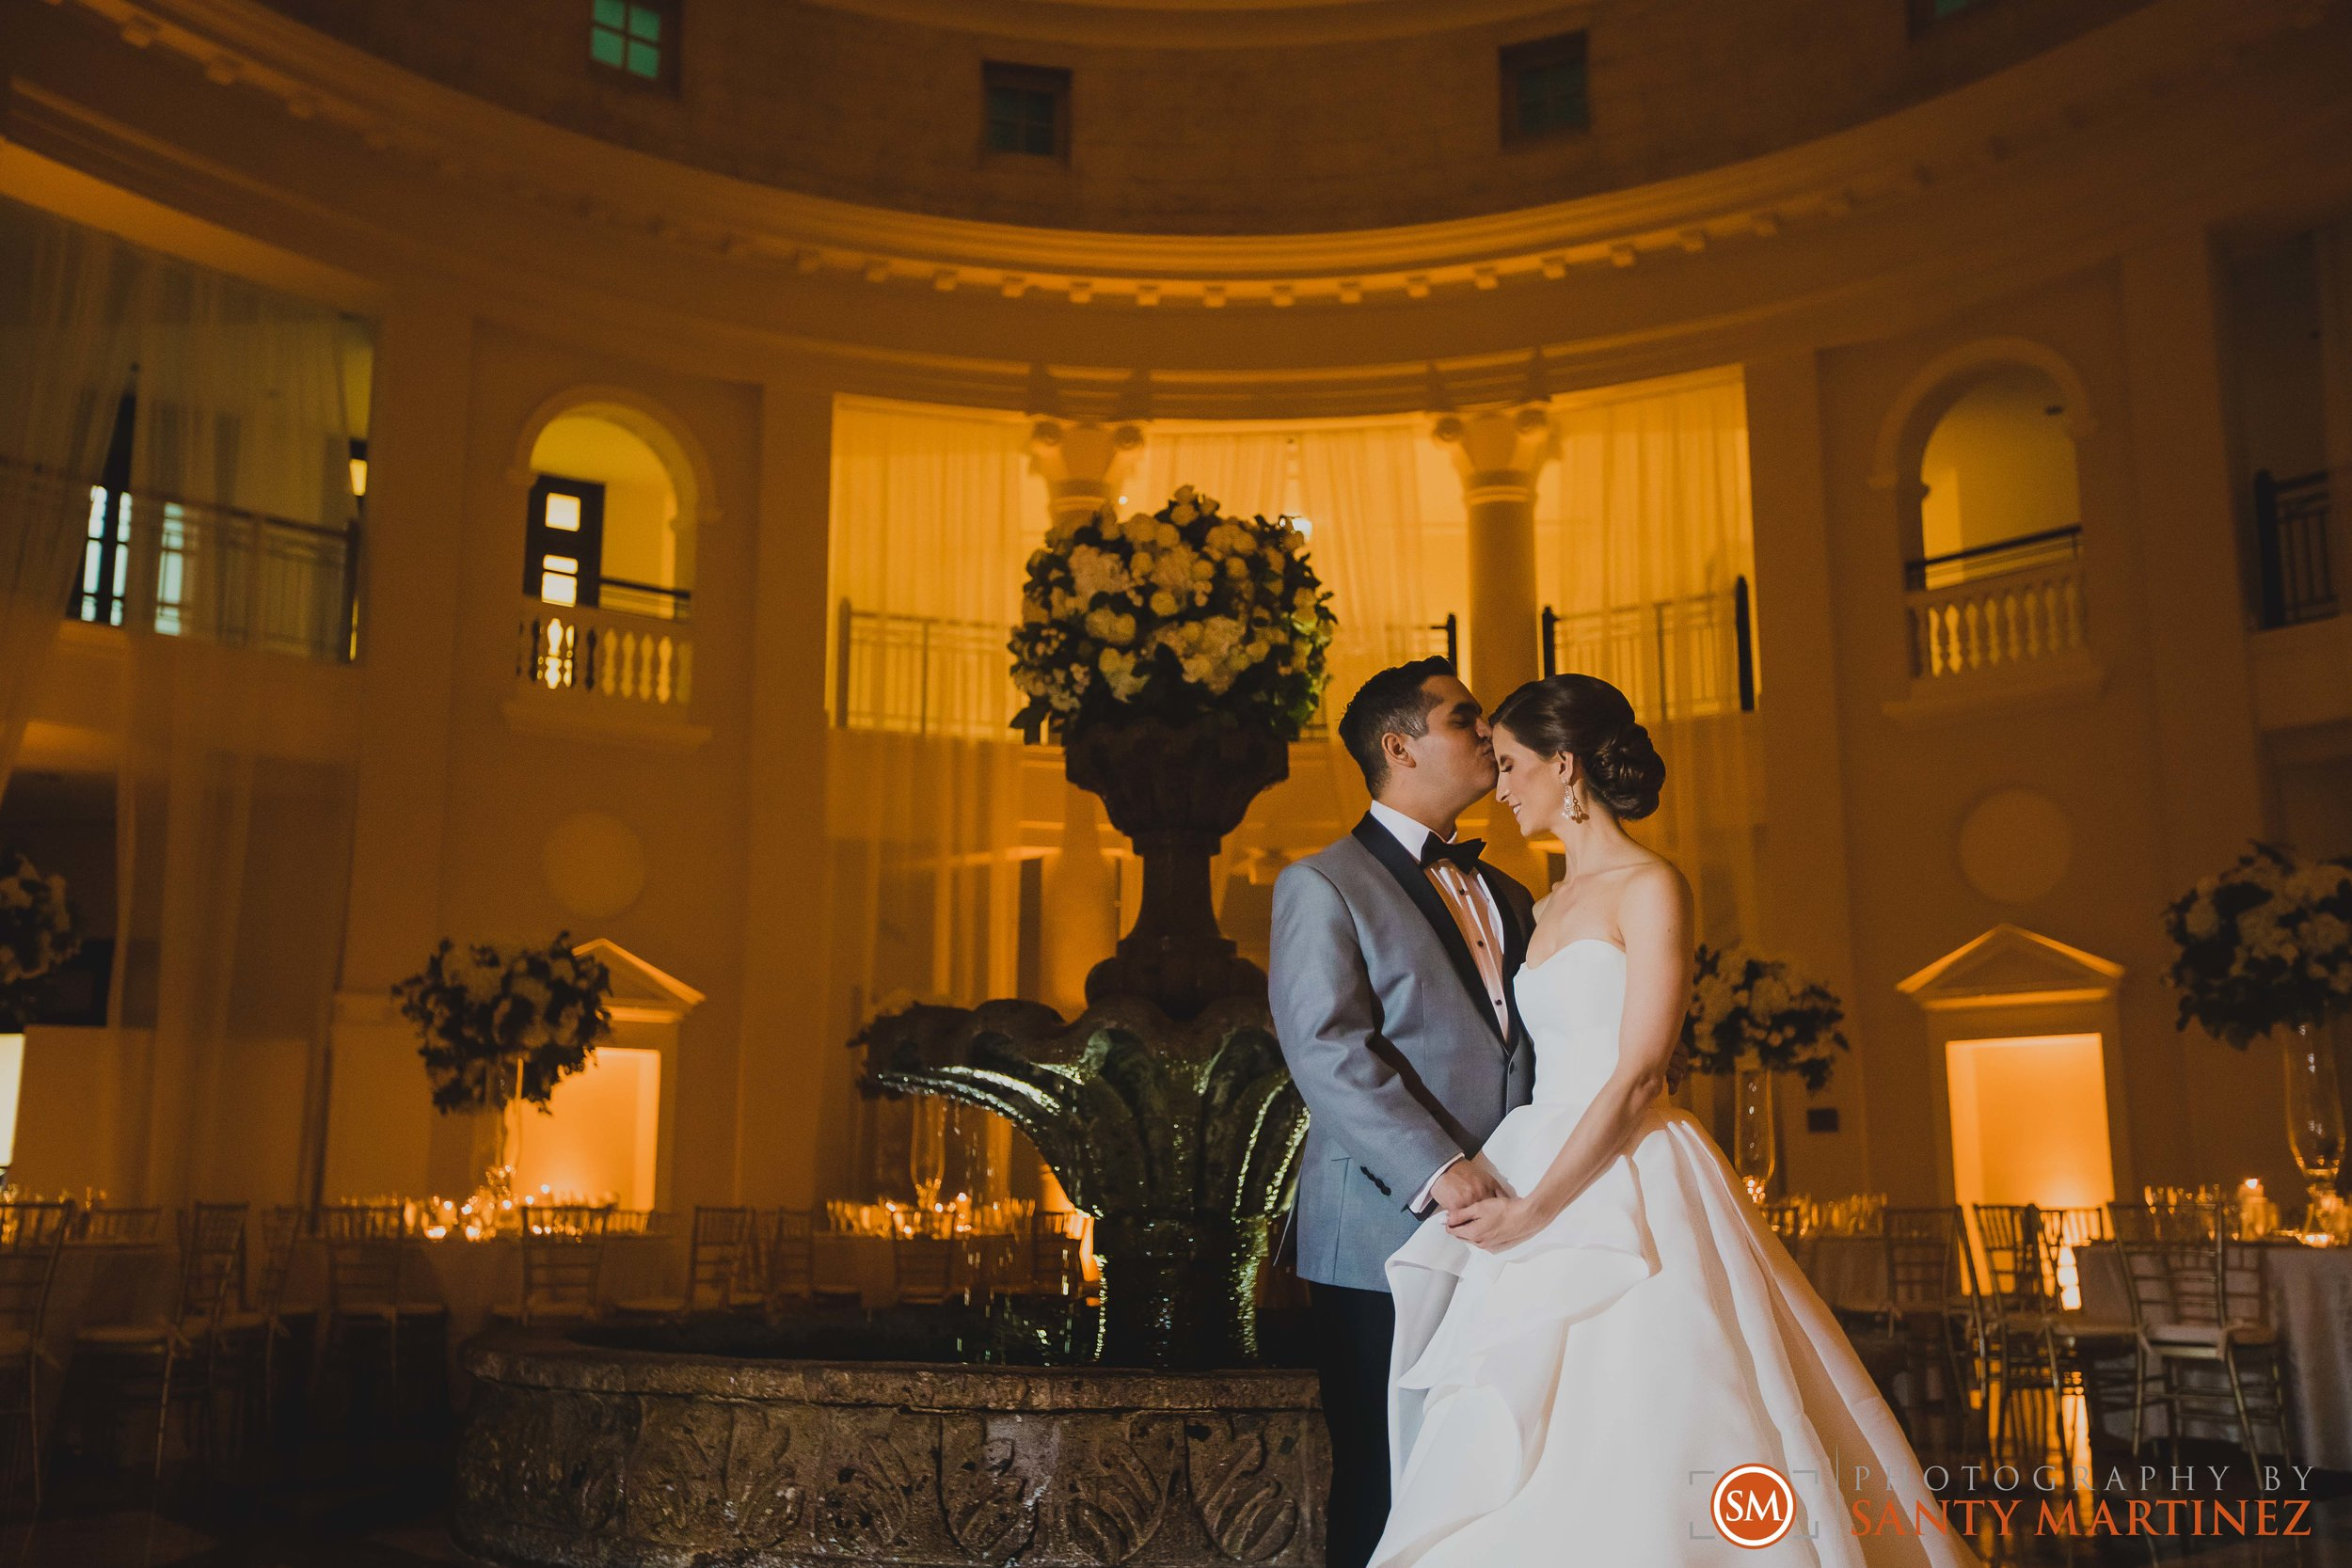 Wedding - Hotel Colonnade Coral Gables - Santy Martinez Photography-16.jpg